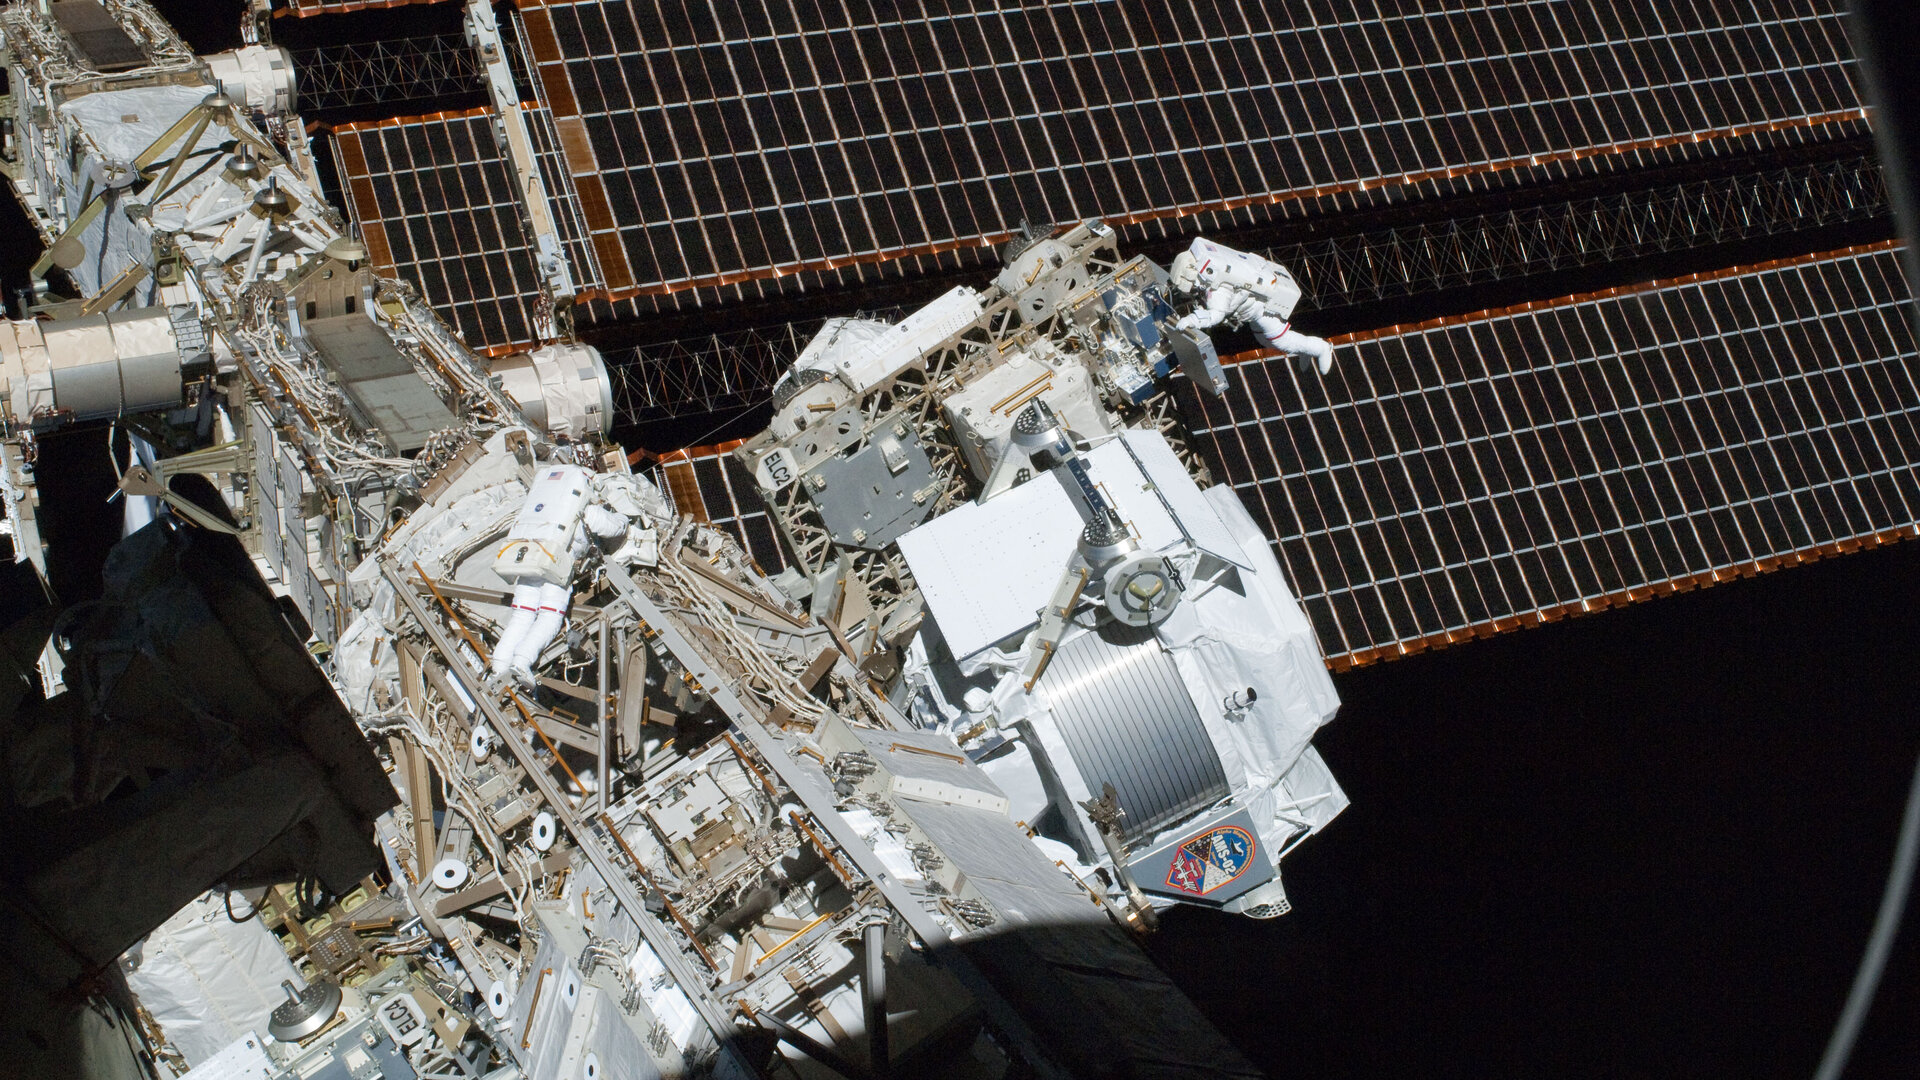 Installing dark matter detector AMS-02 outside Space Station